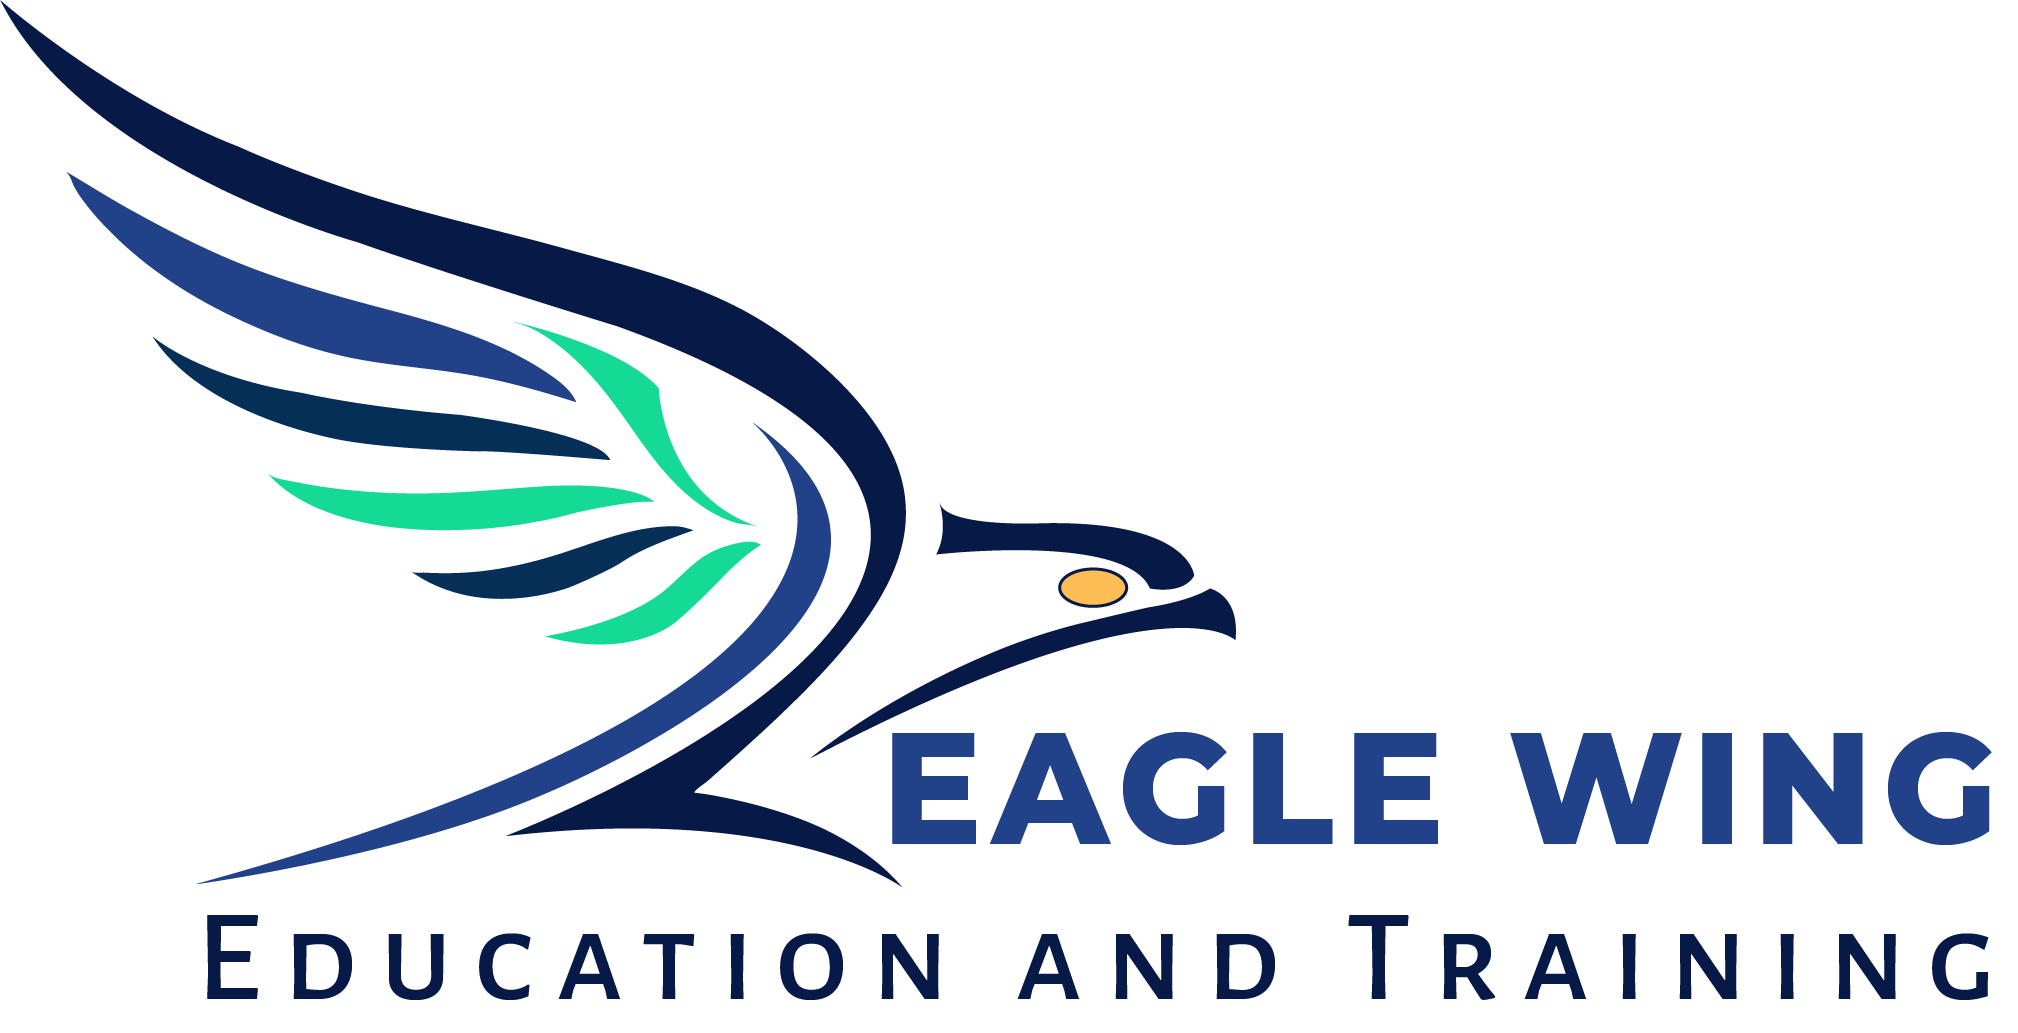 Eagle Wing Education and Training